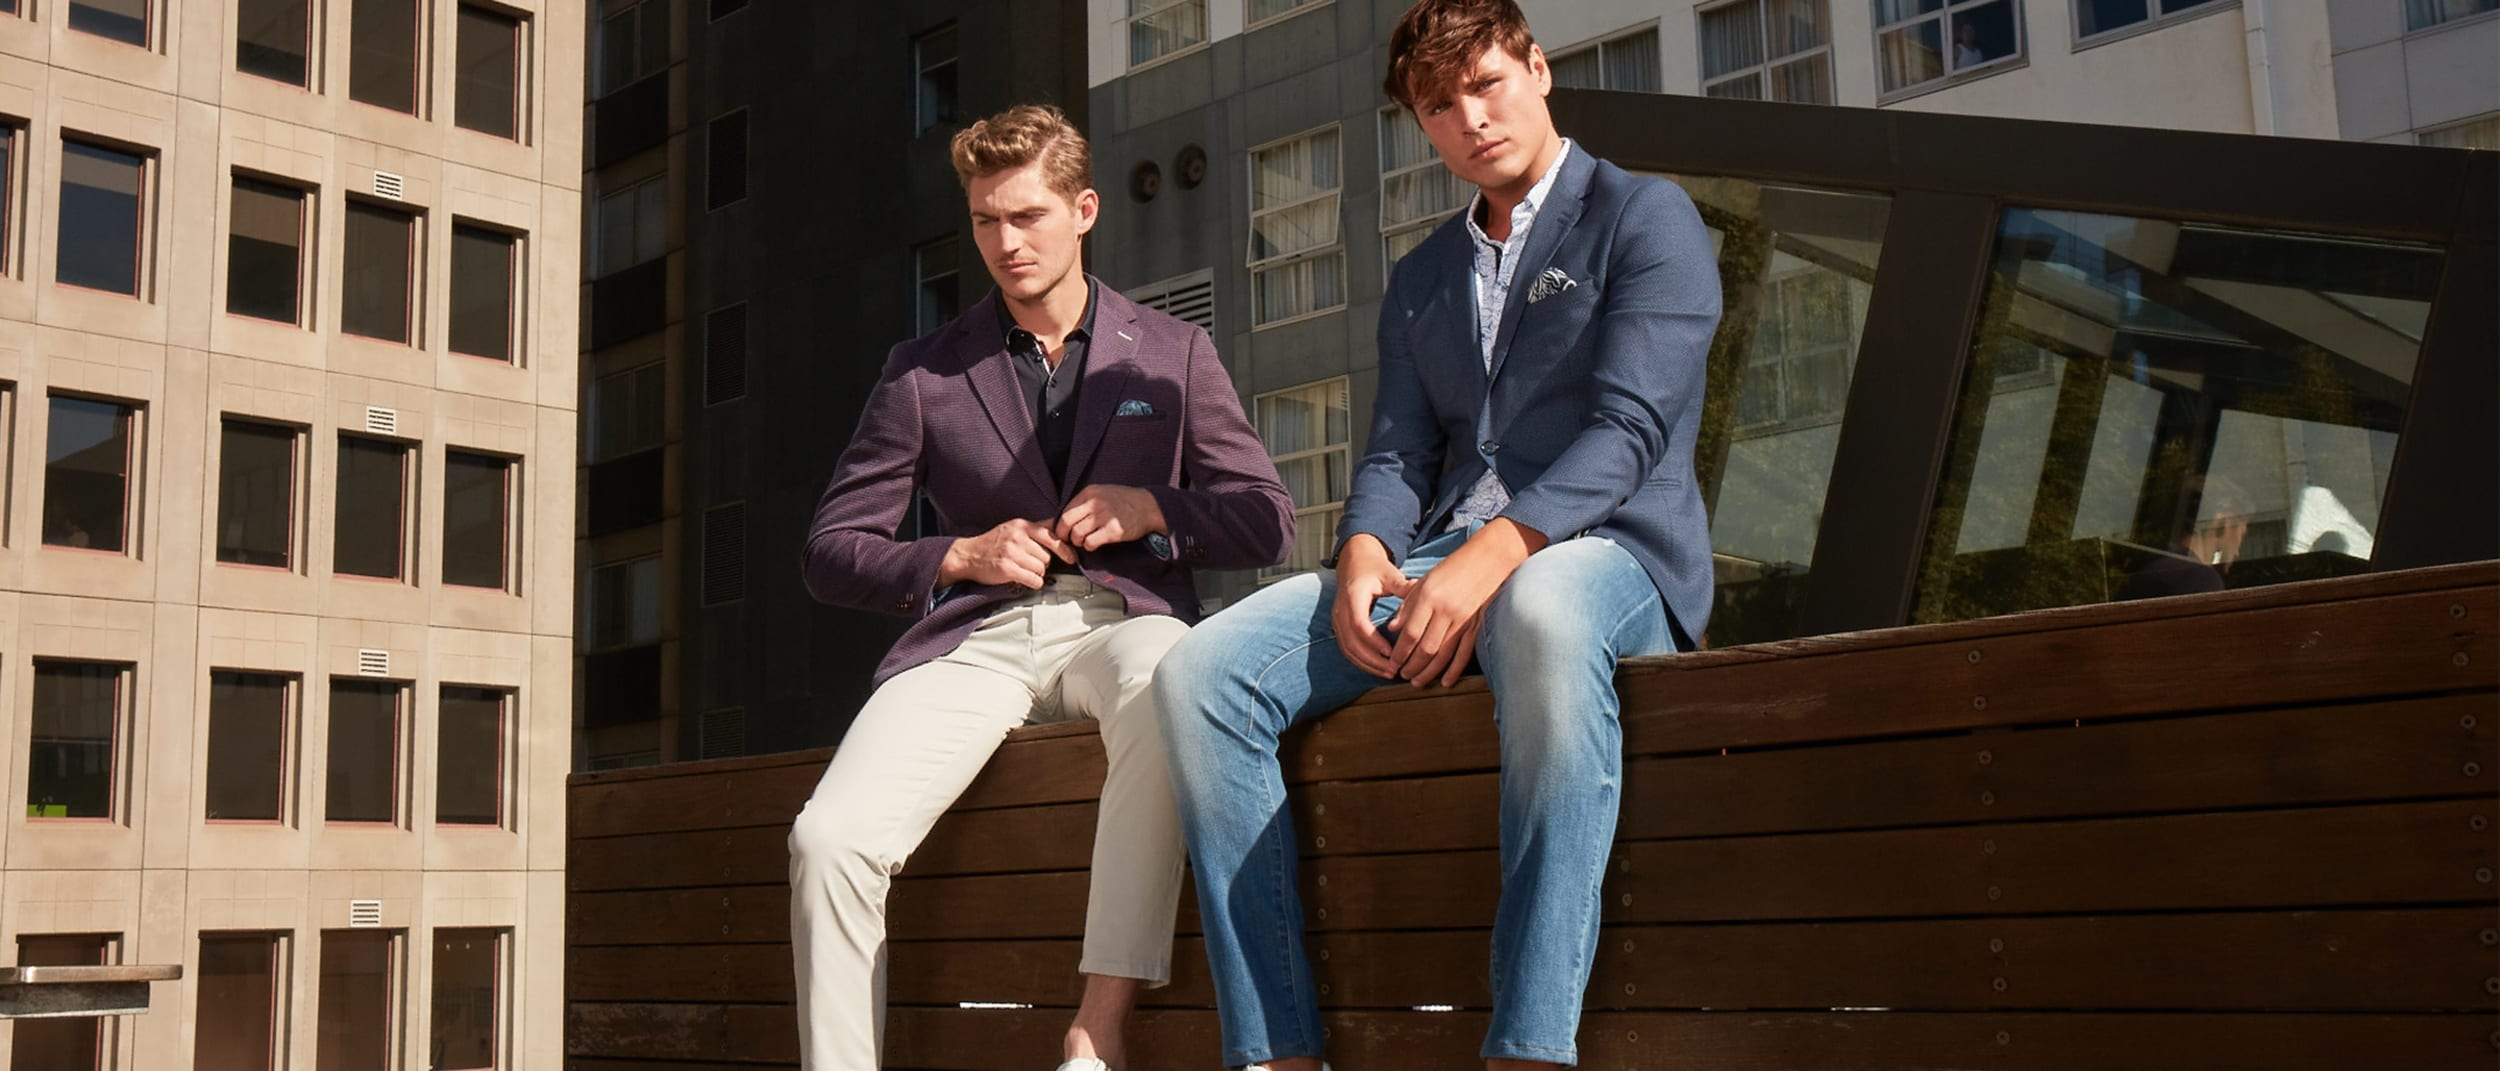 Politix: $100 off Jacket, Top and Bottom Combo*